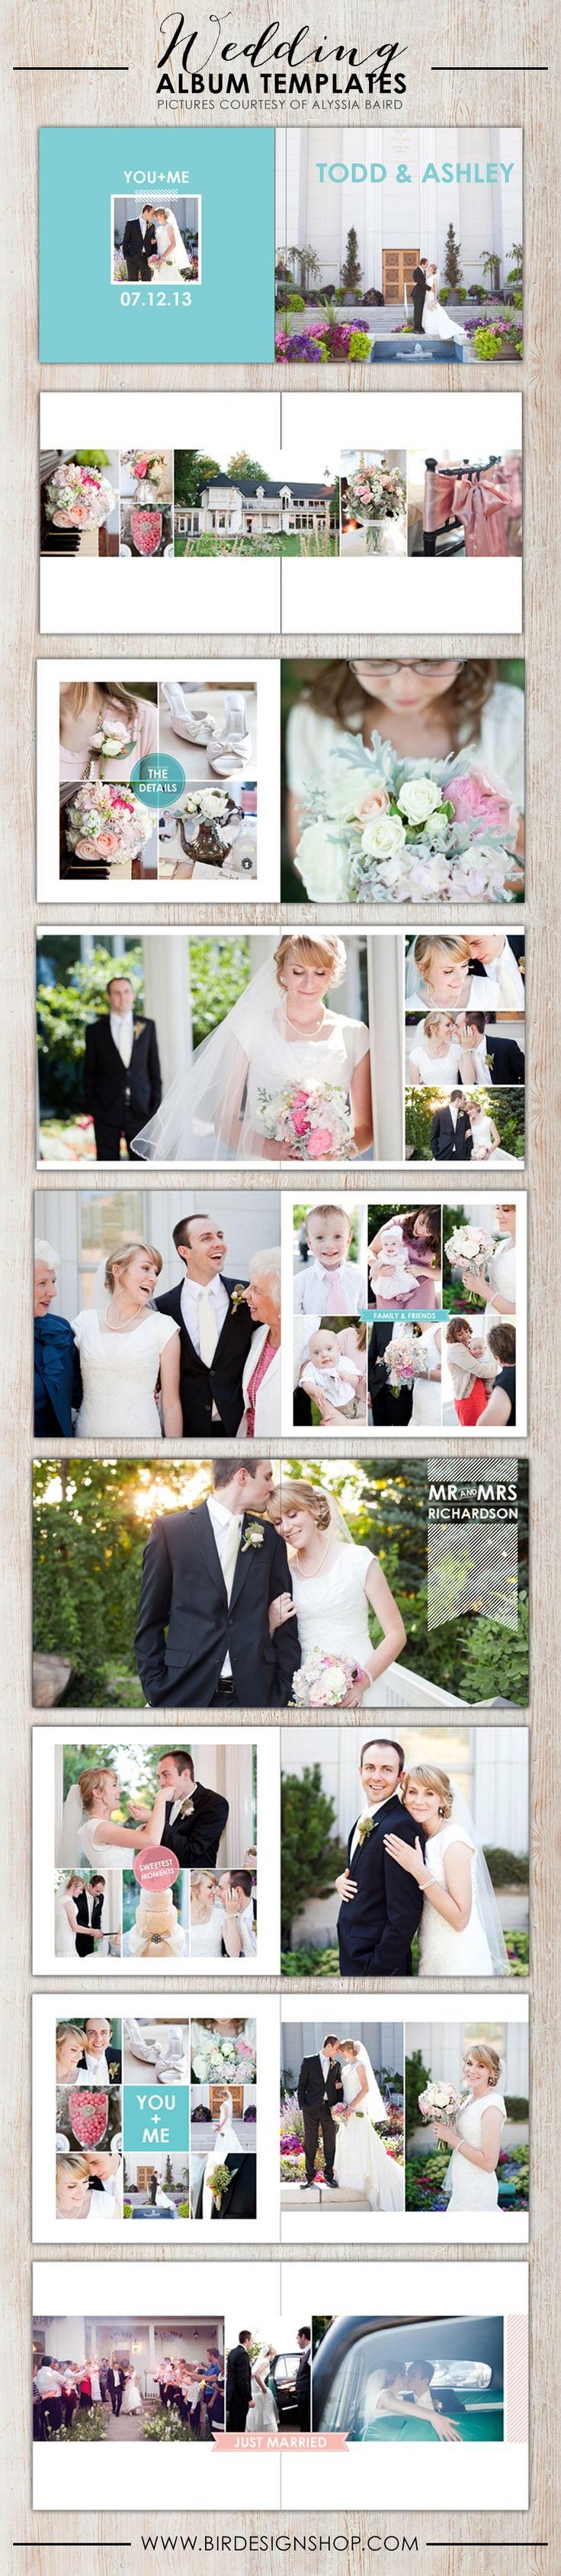 Adorable wedding album templates for Photoshop